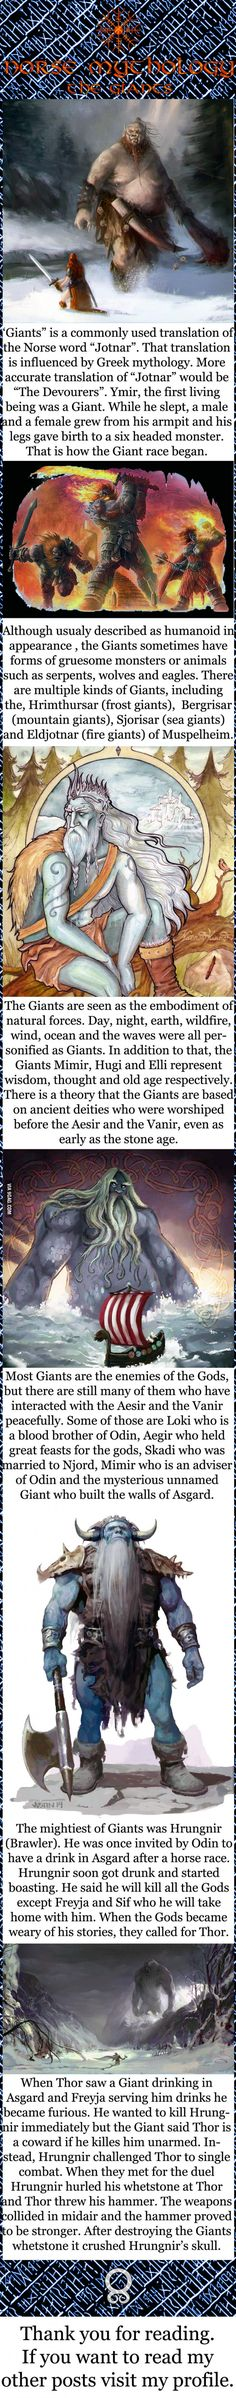 Norse mythology - The Giants